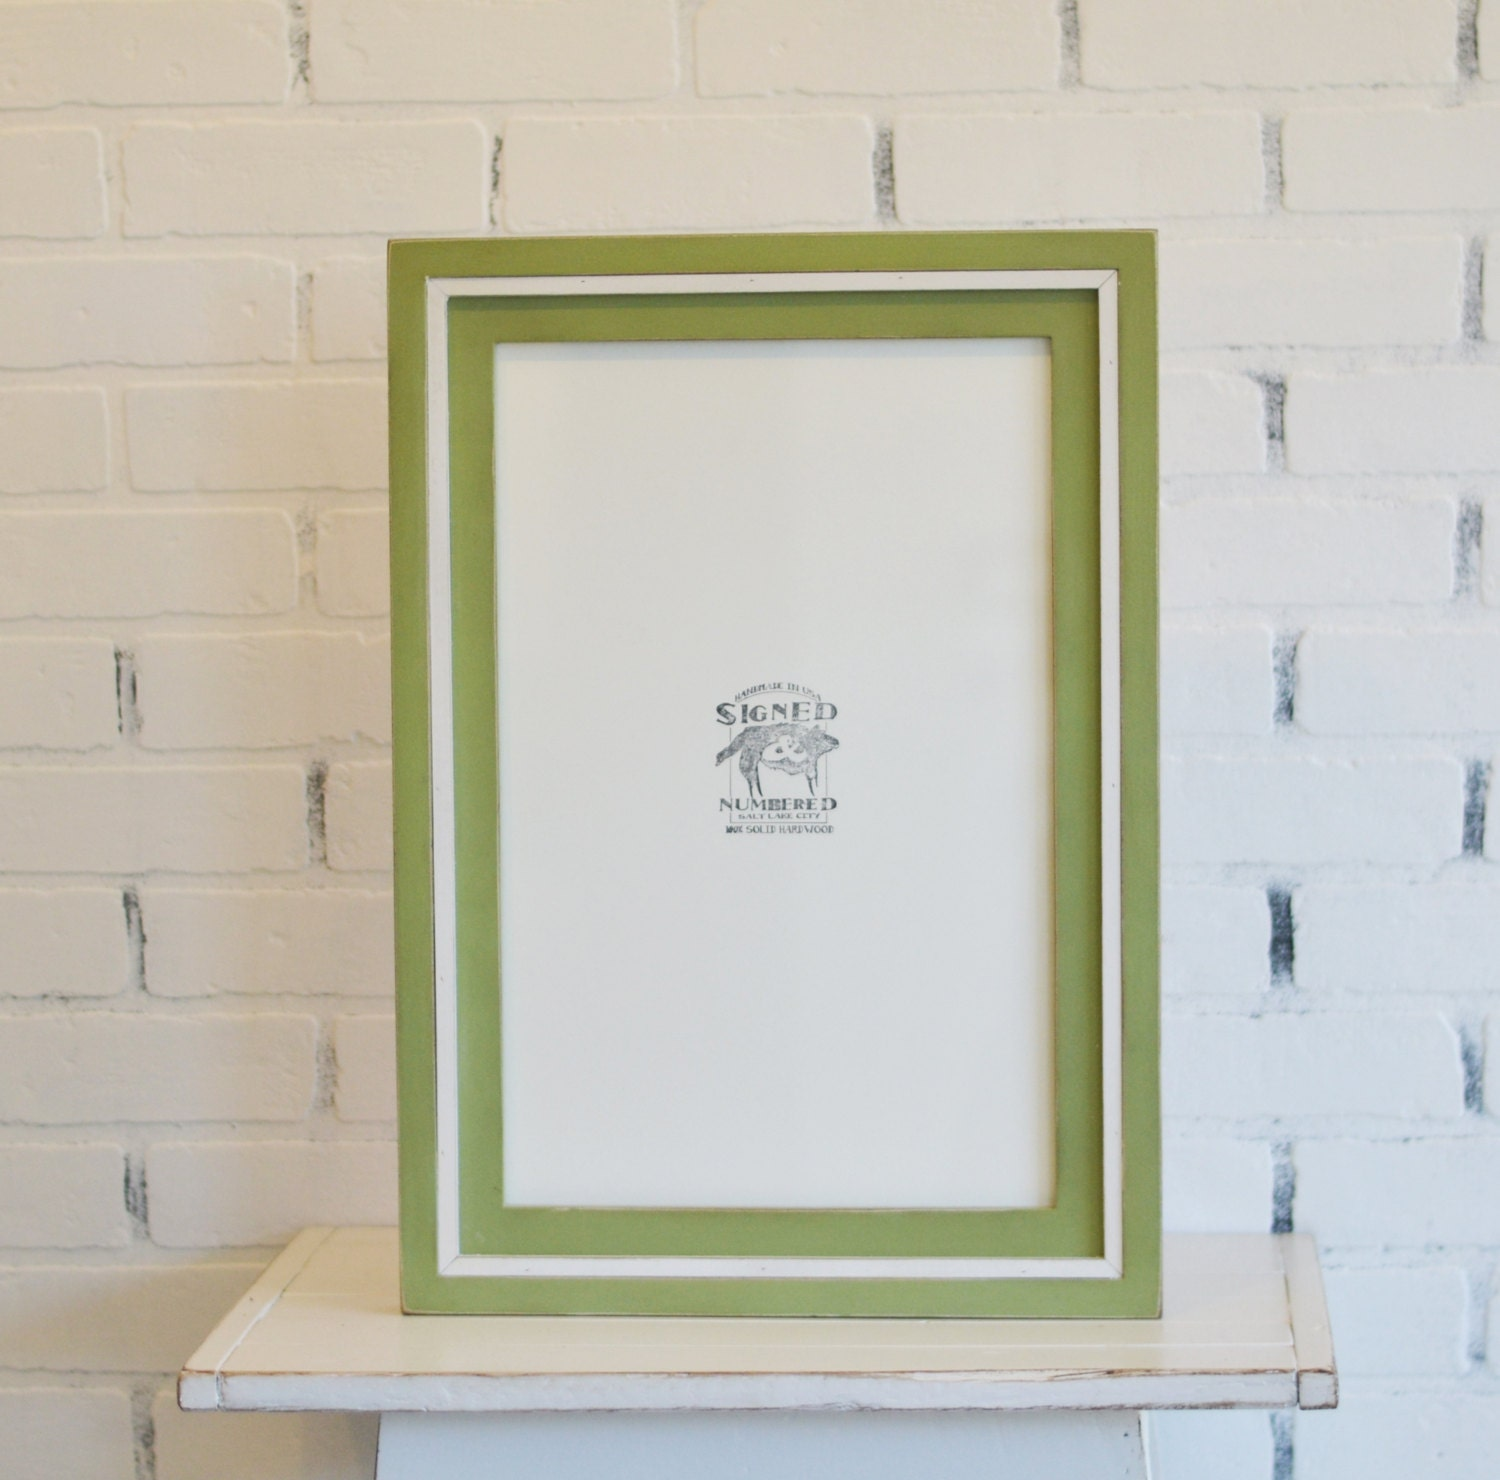 letter of request letter 11x17 inch picture frame in cooper build up style with vintage 10202